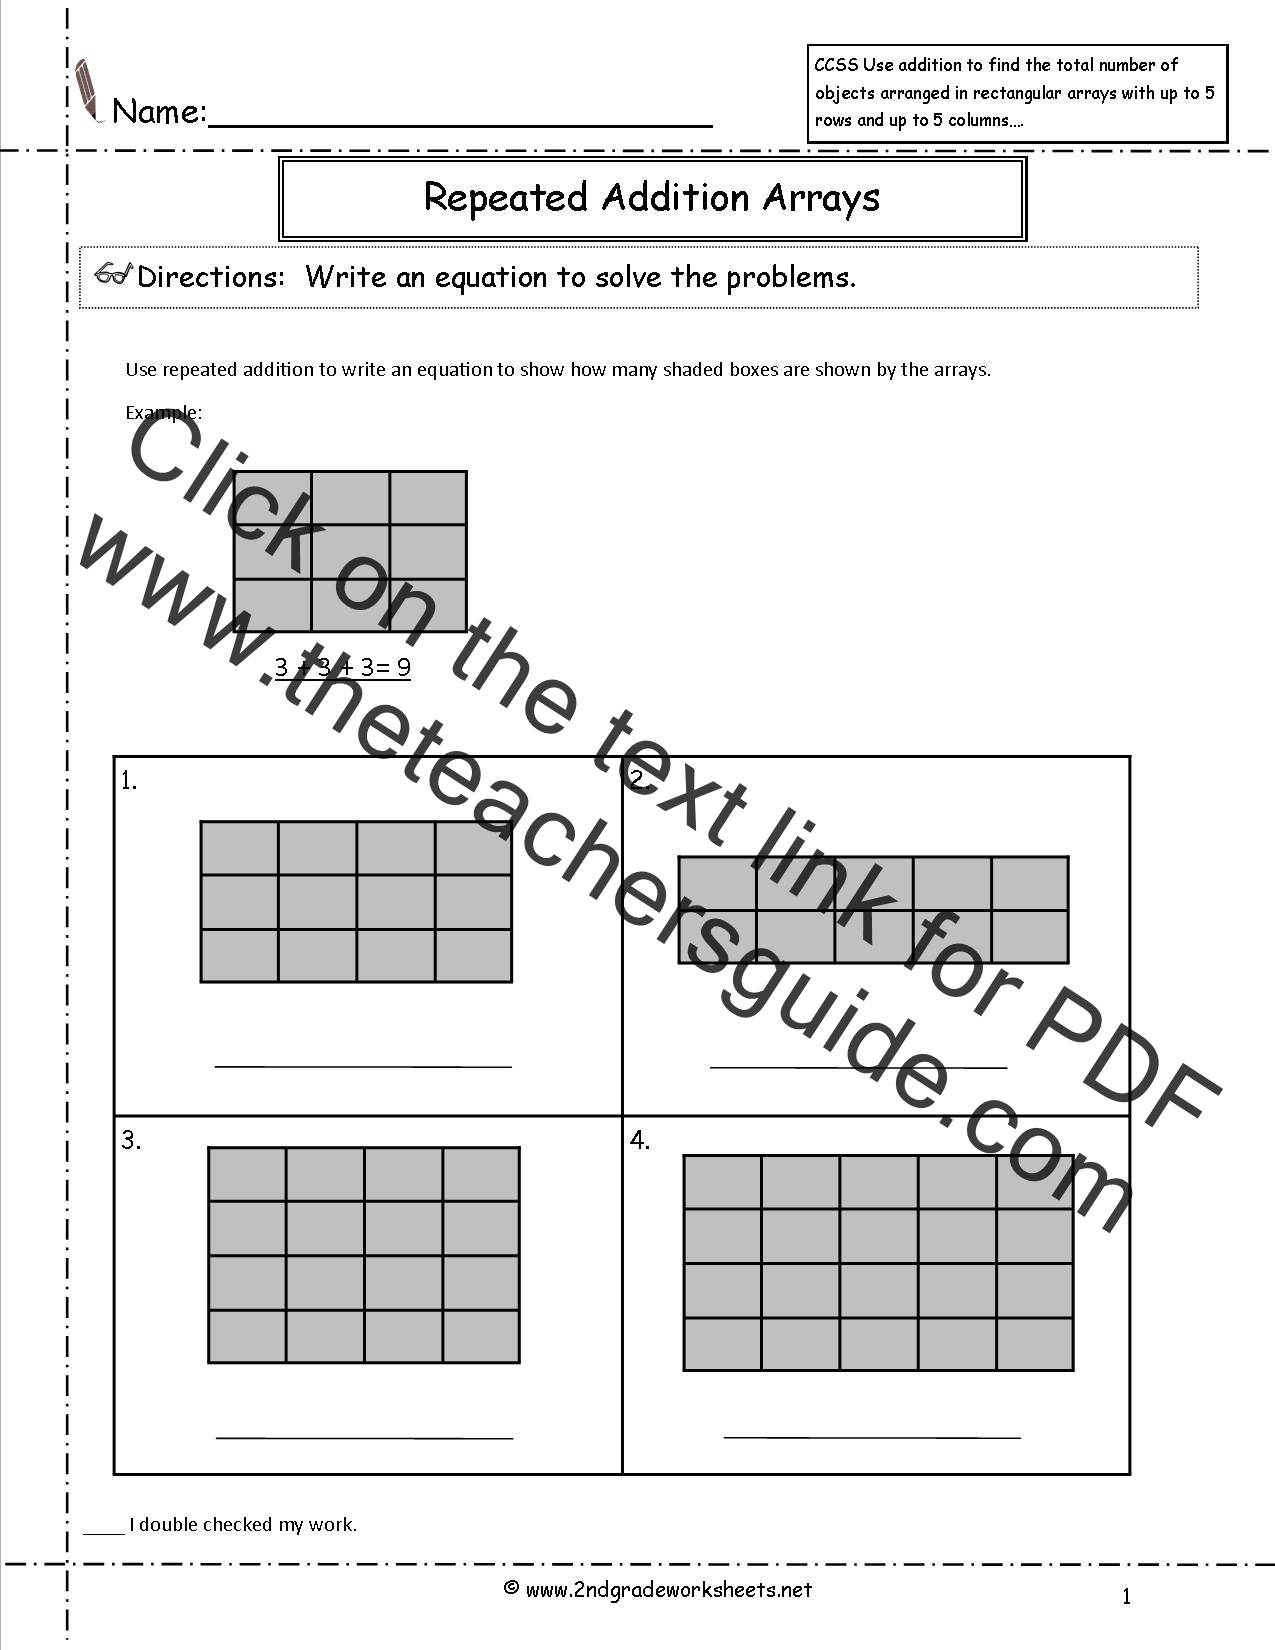 Printables Repeated Addition Worksheets ccss 2 oa 4 worksheets repeated addition arrays worksheet